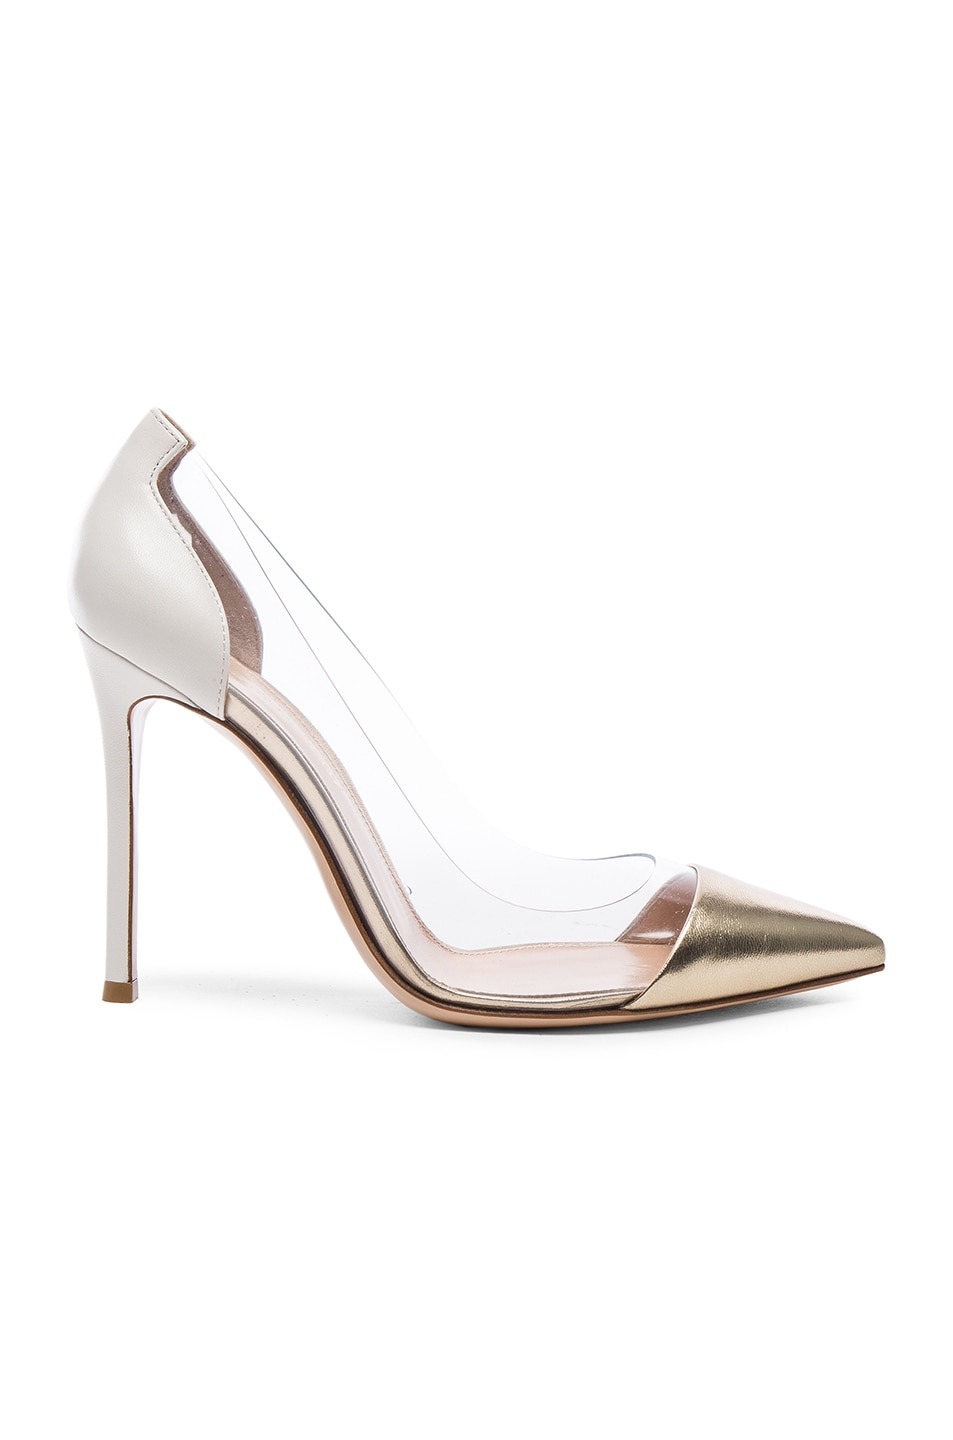 Image 1 of Gianvito Rossi Leather Plexi Pumps in Mekong & Off White